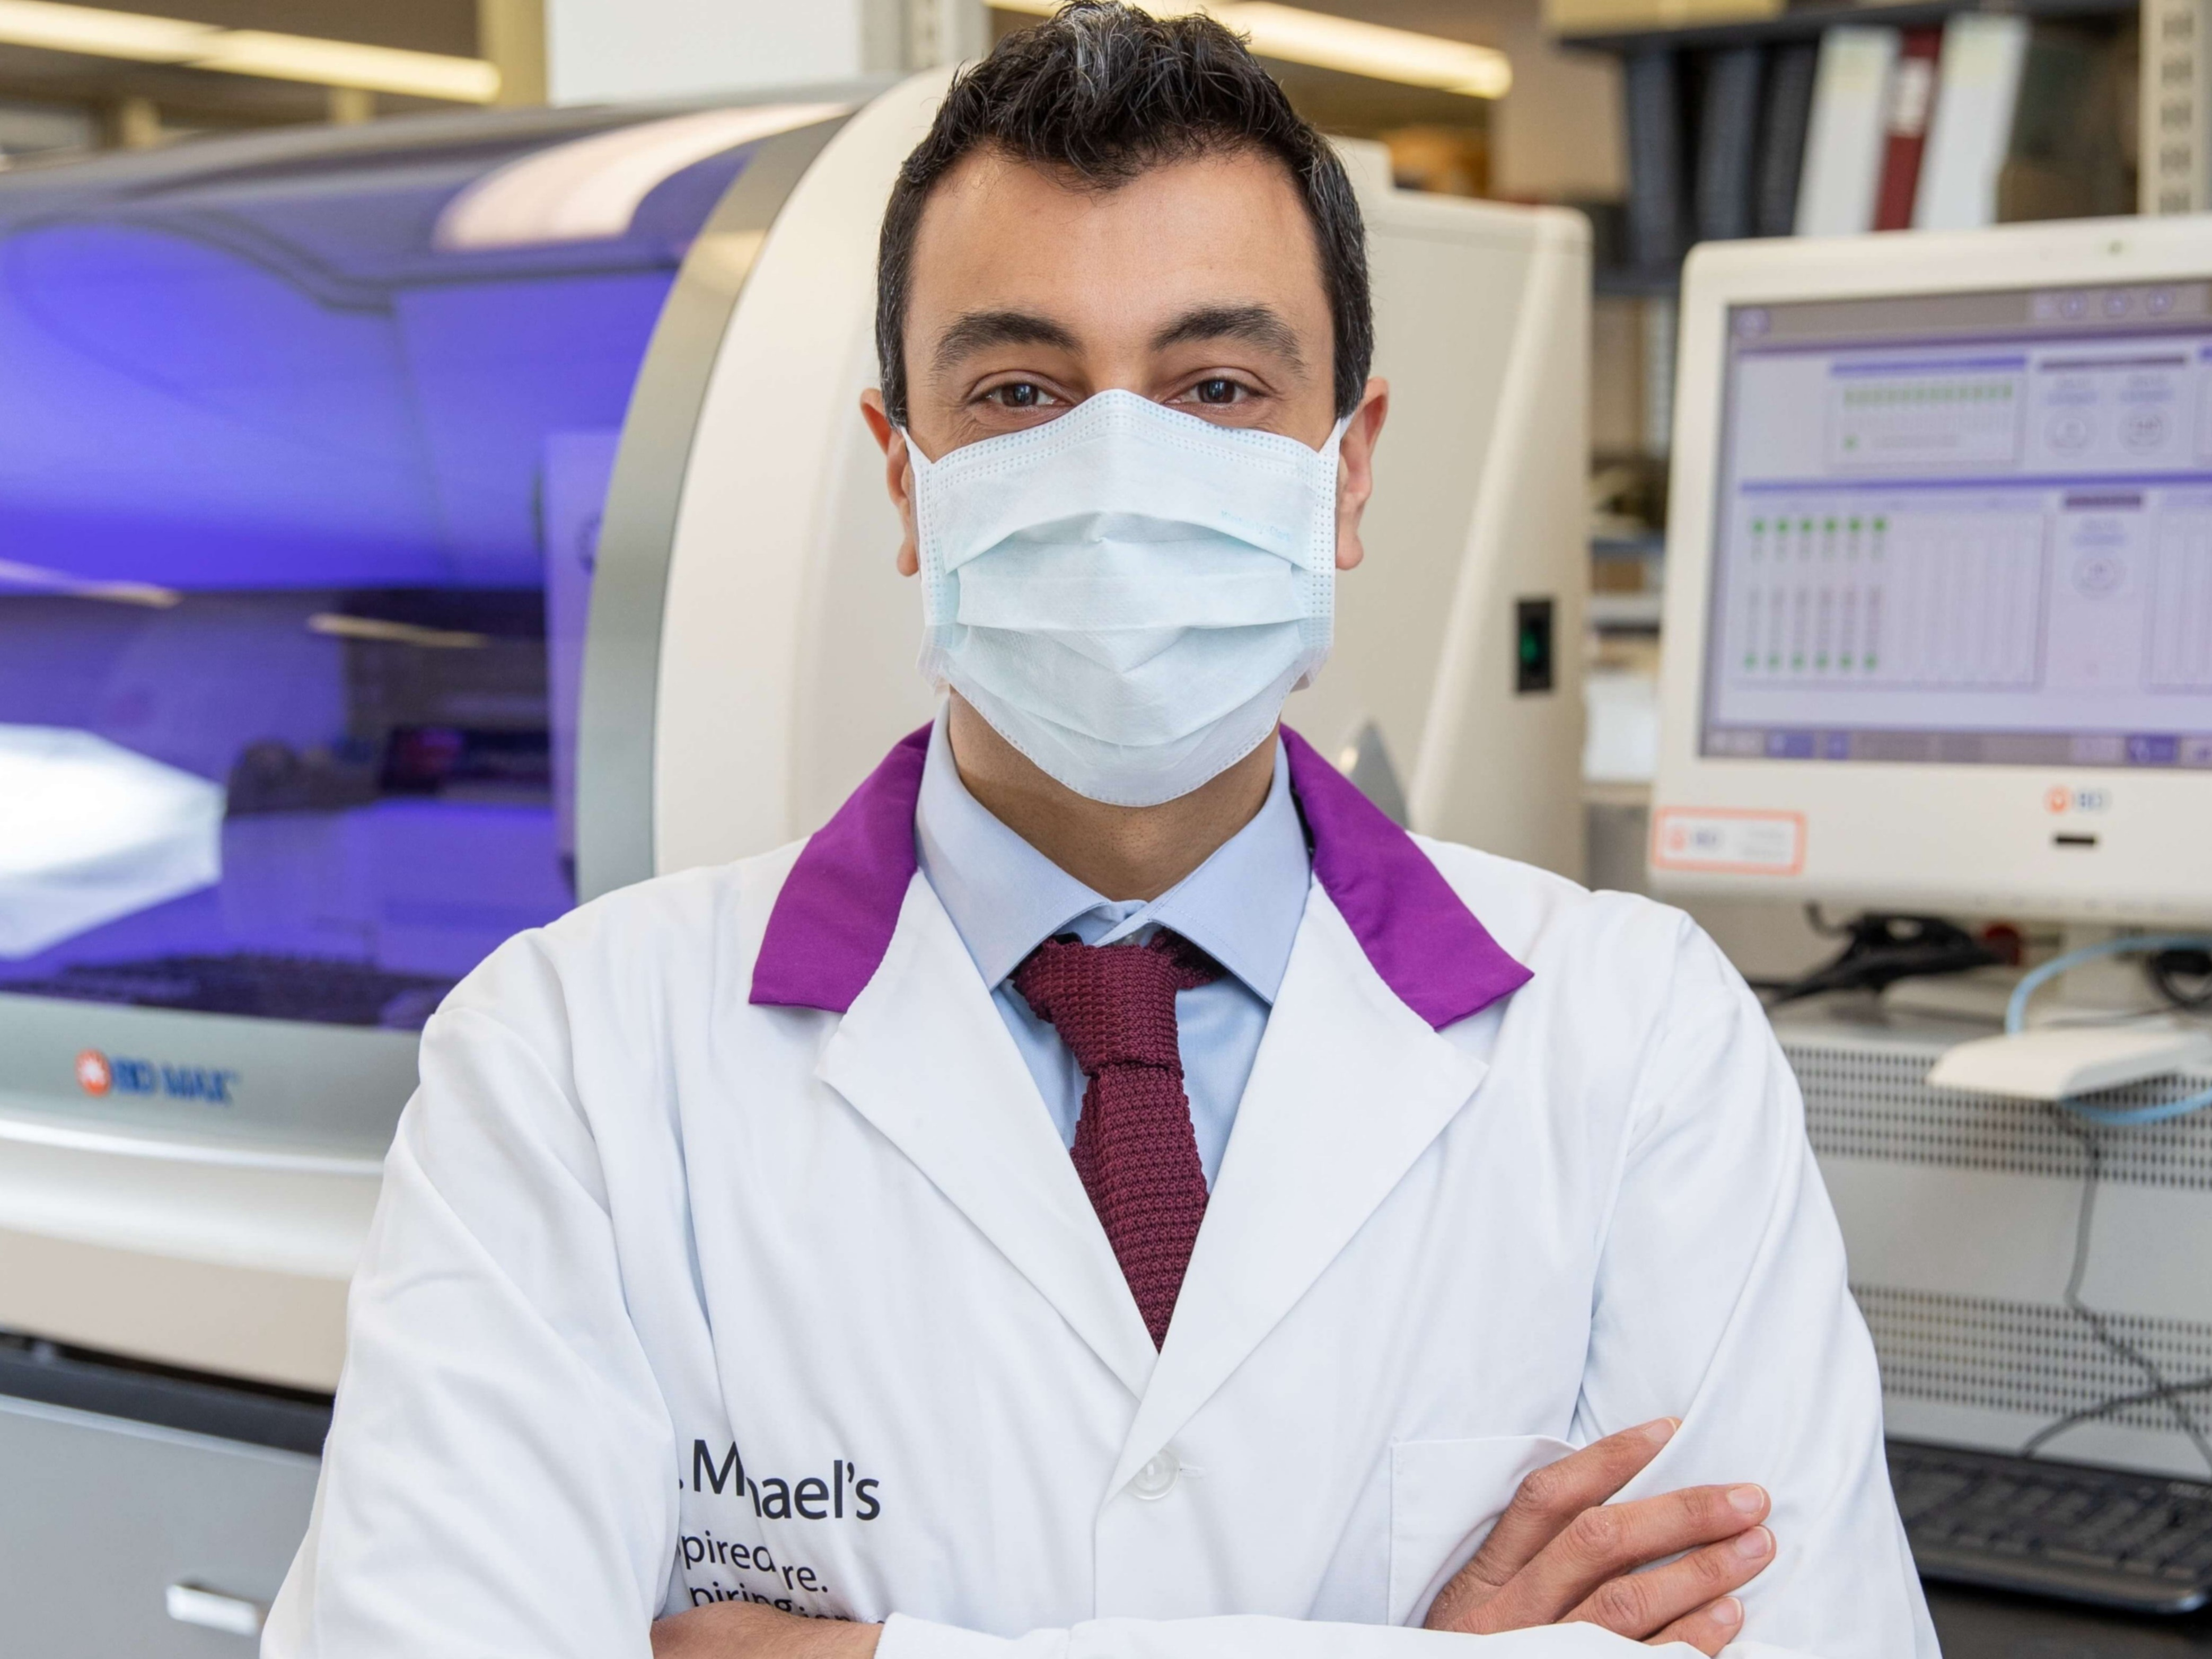 A doctor wearing a mask